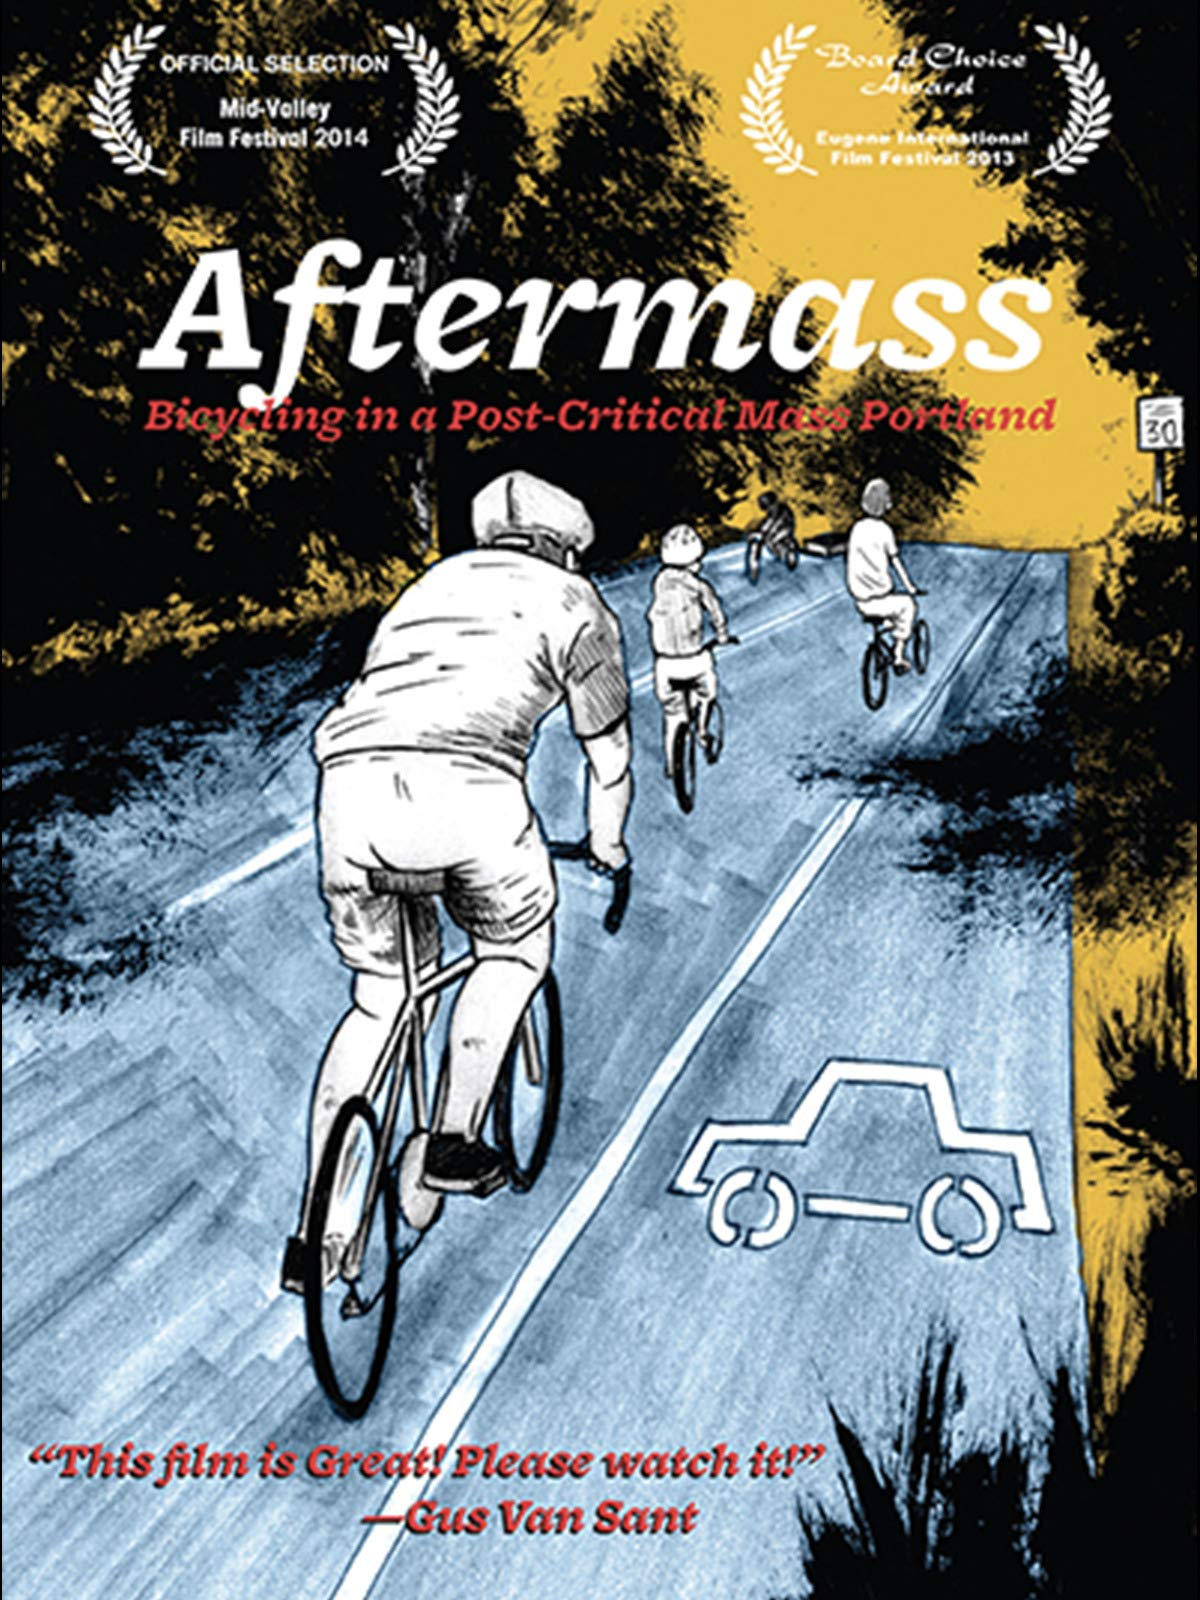 Watch Aftermass on Amazon Prime Instant Video UK